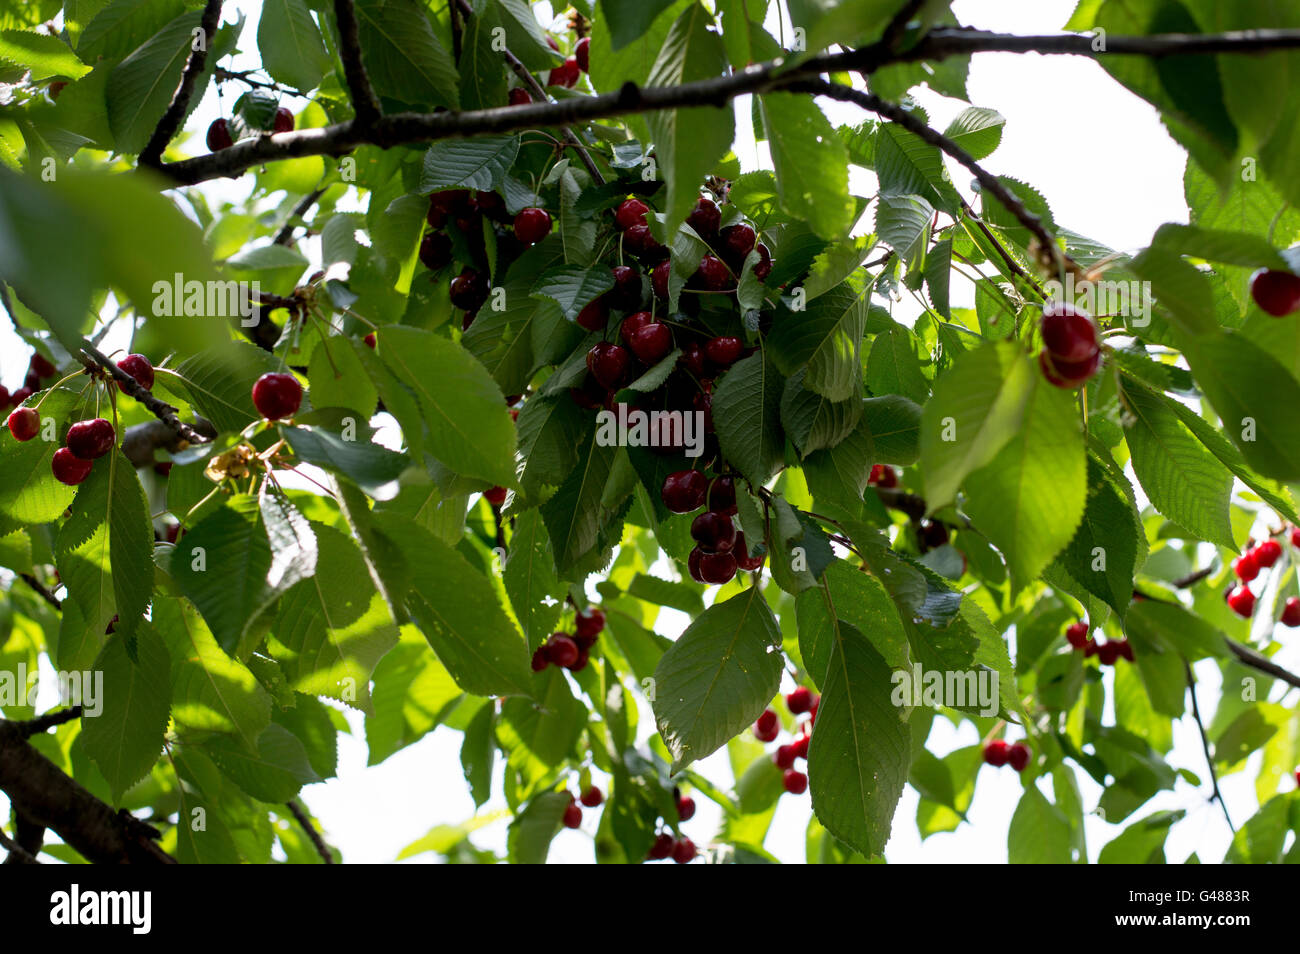 branch with a large number of ripe sweet cherry - Stock Image